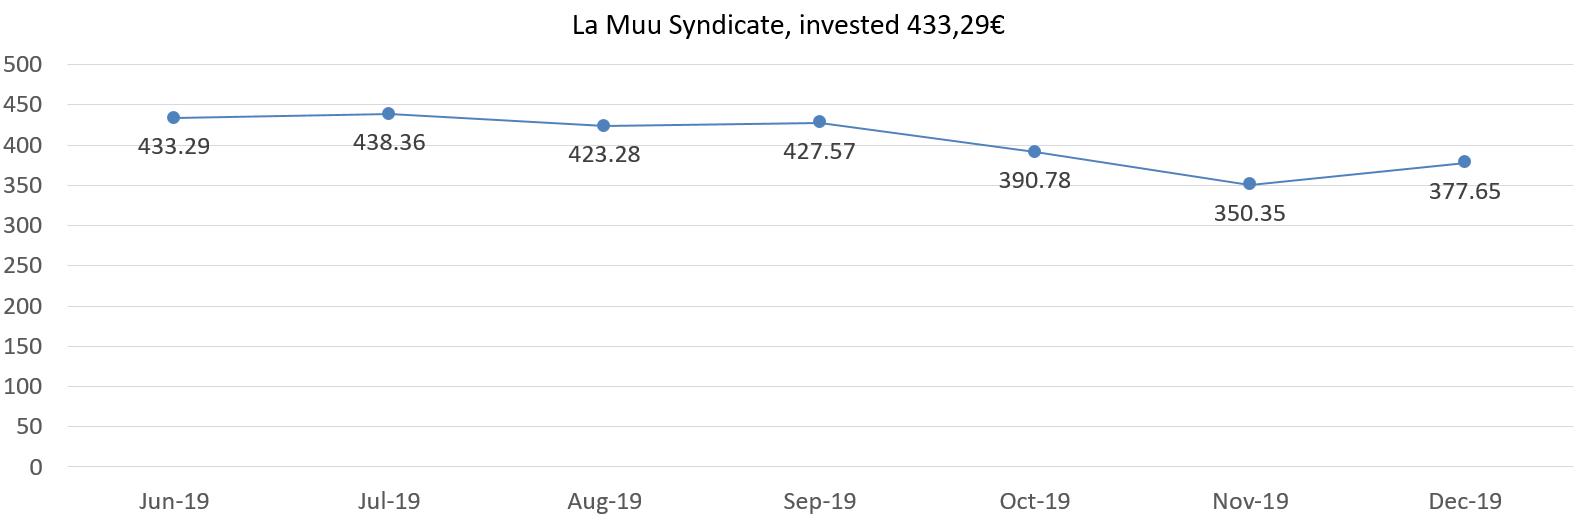 La Muu syndicate net worth december 2019